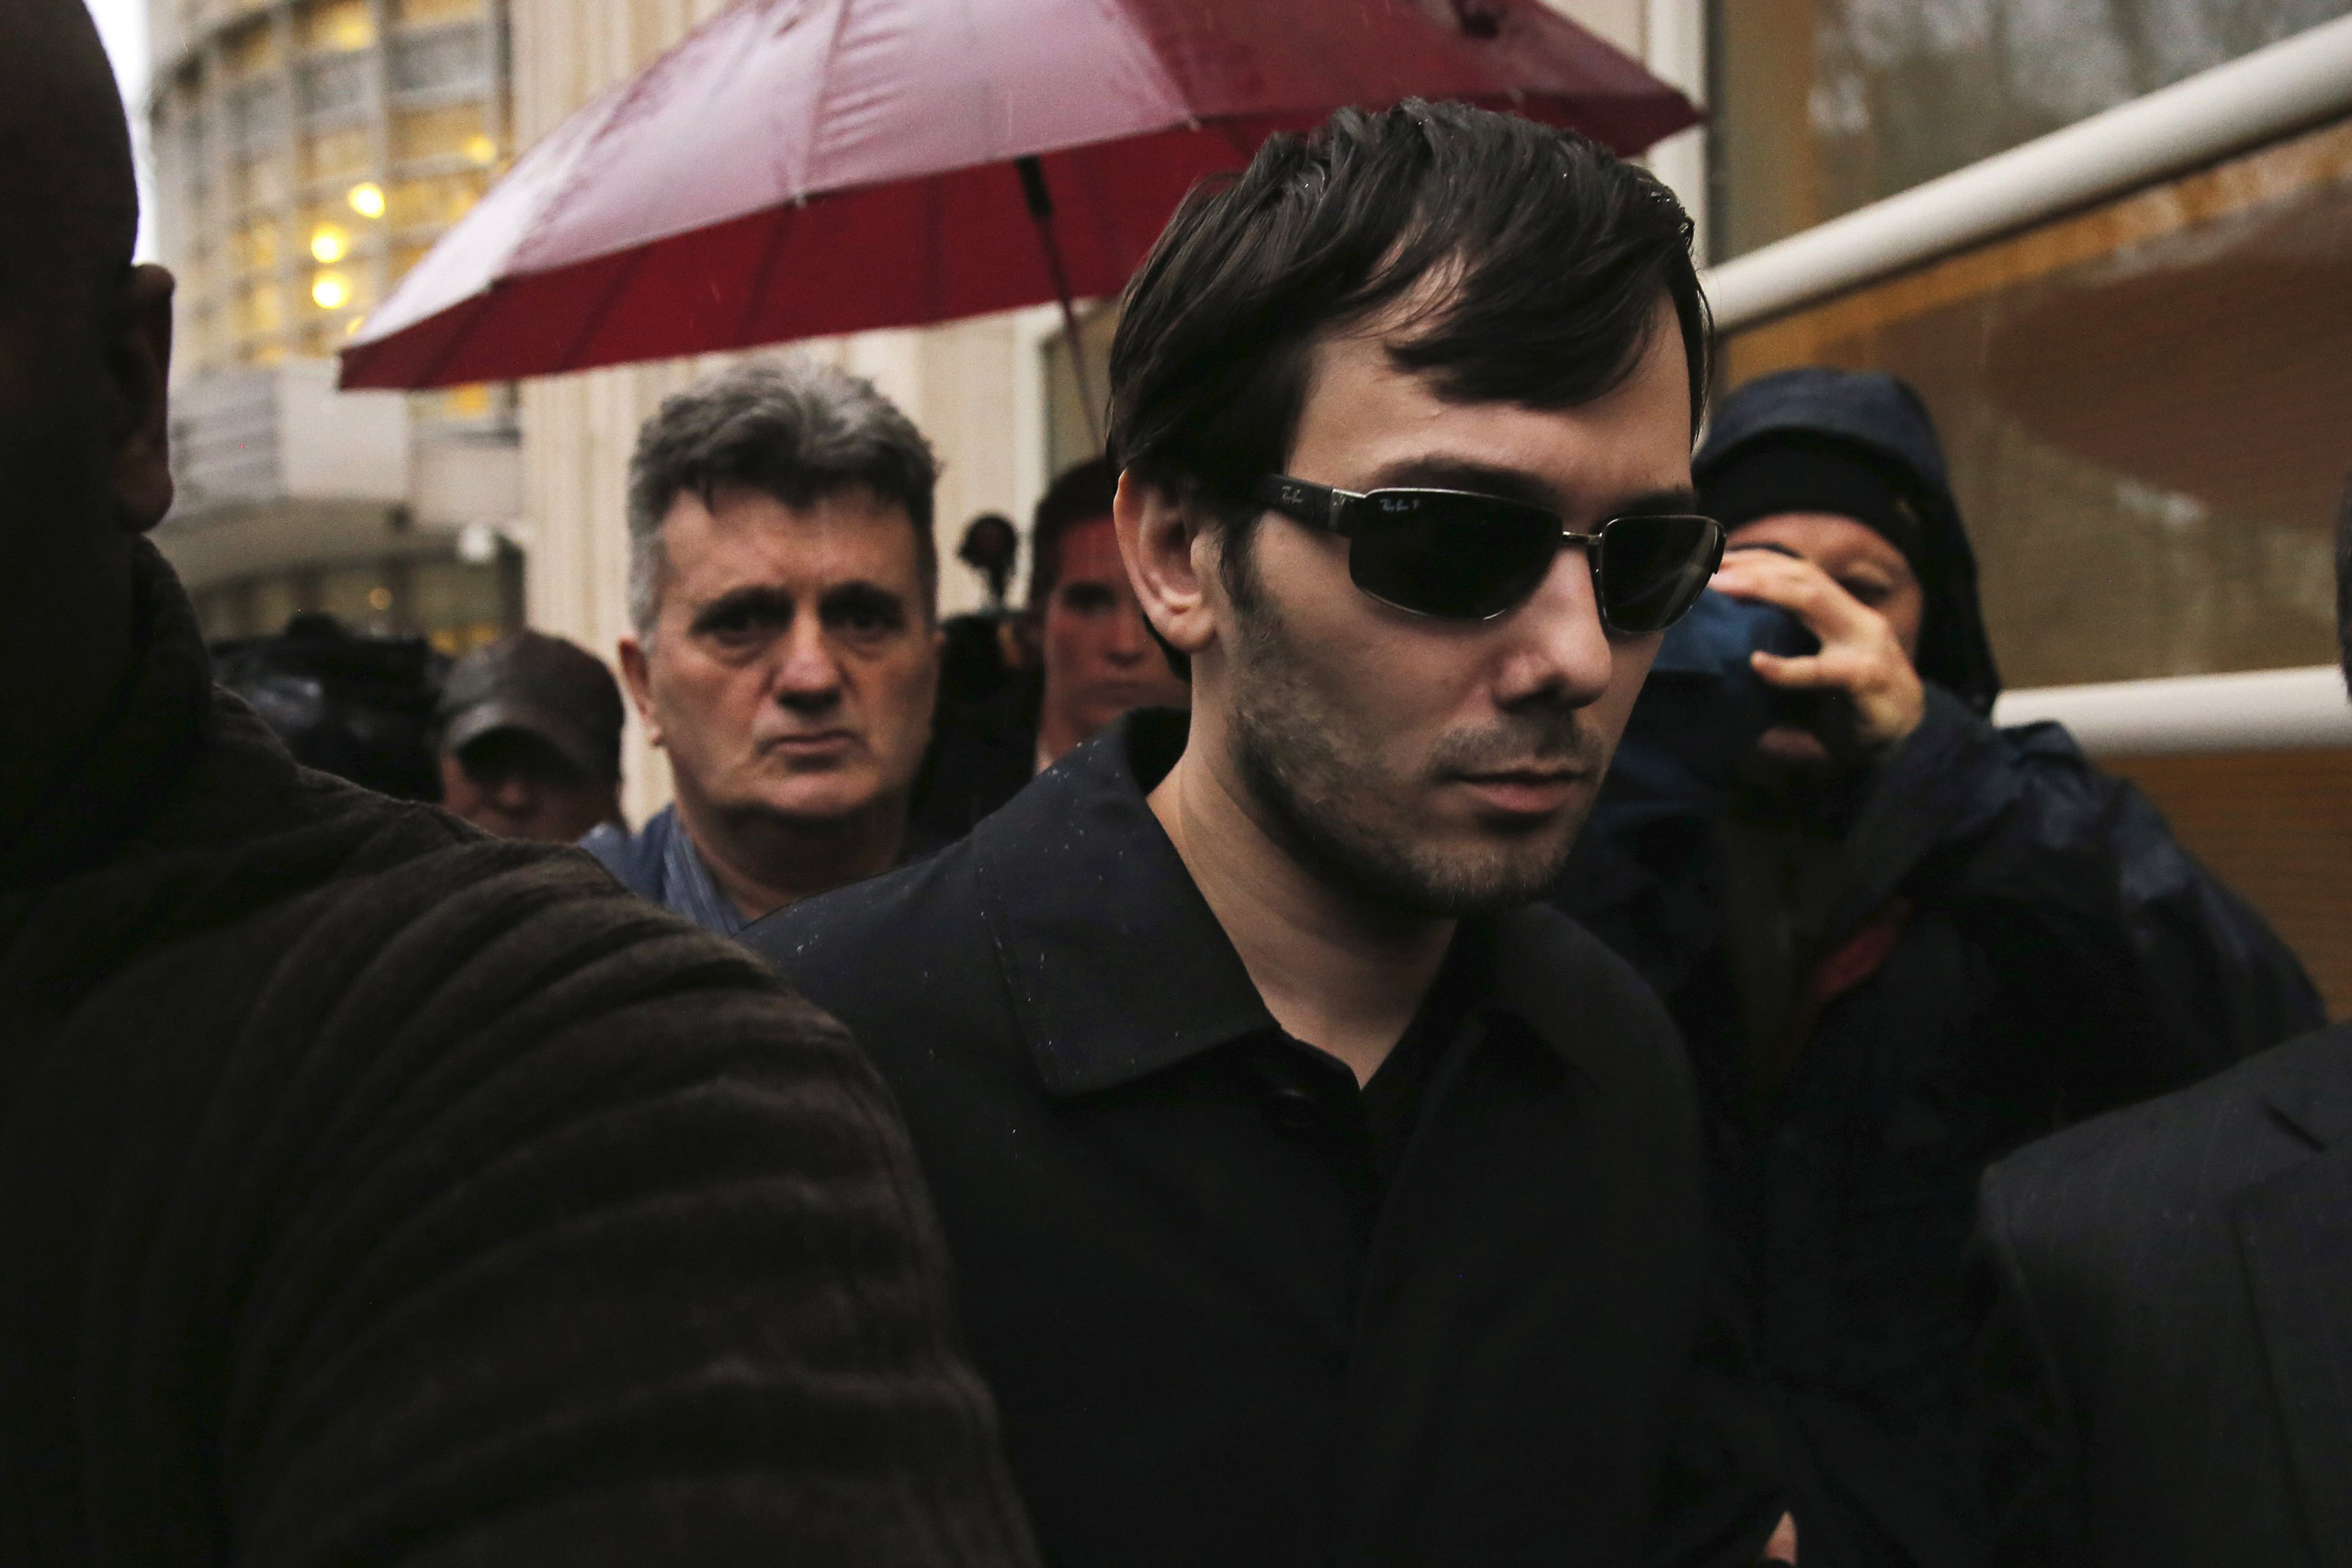 Martin Shkreli, chief executive officer of Turing Pharmaceuticals and KaloBios Pharmaceuticals, departs U.S. Federal Court in New York City on Dec. 17, 2015